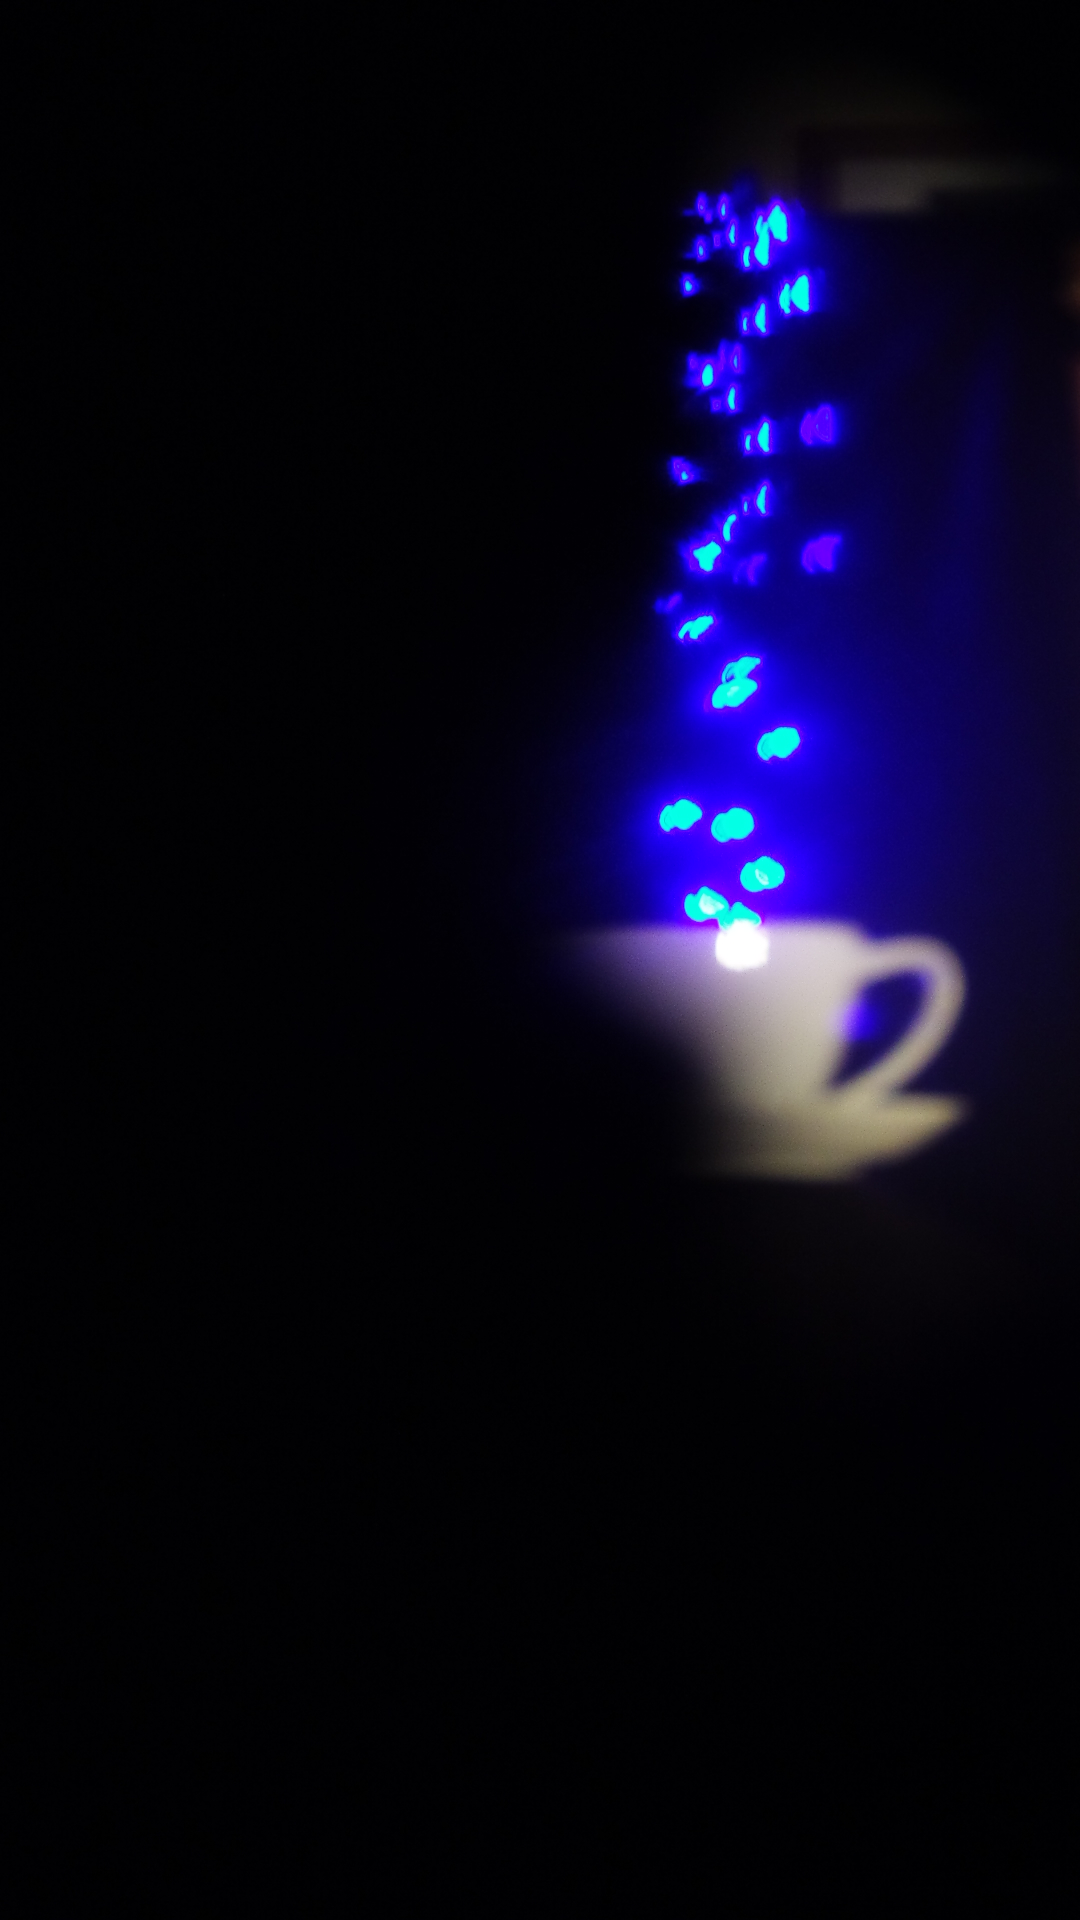 Playing with Bokeh